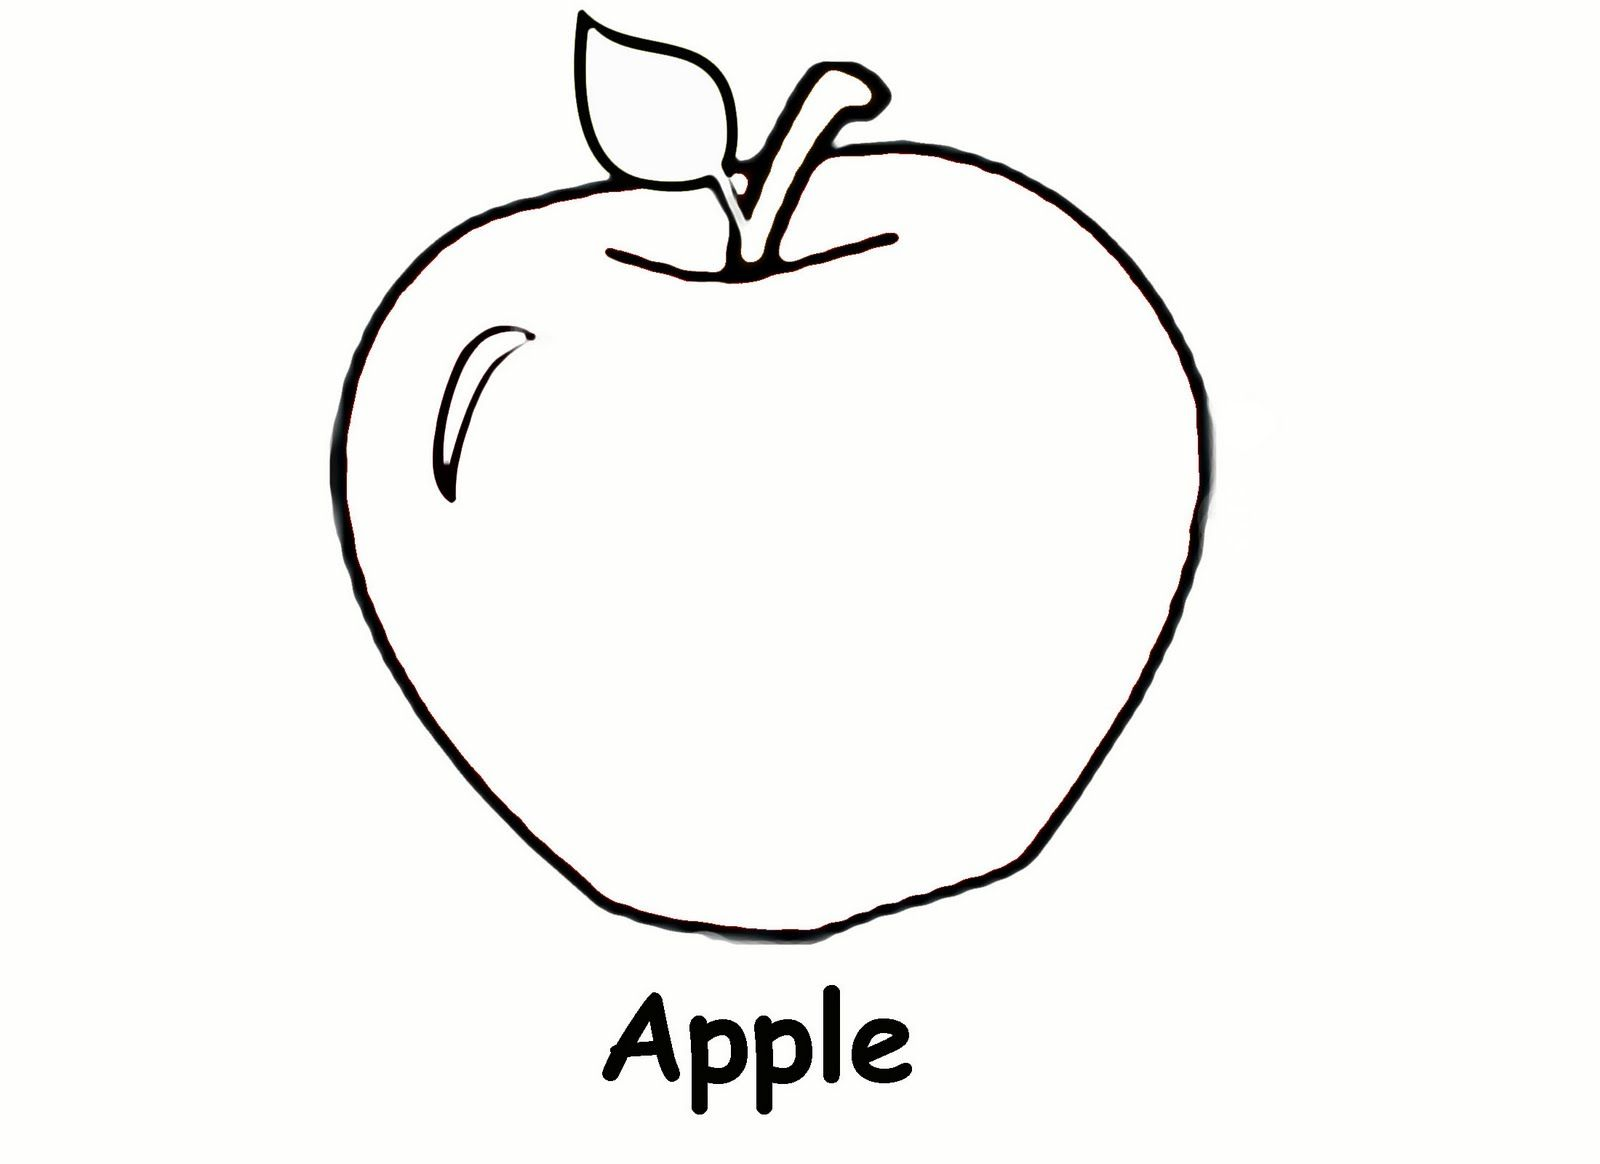 Worksheets Preschool Apple Printable Lacing Lines